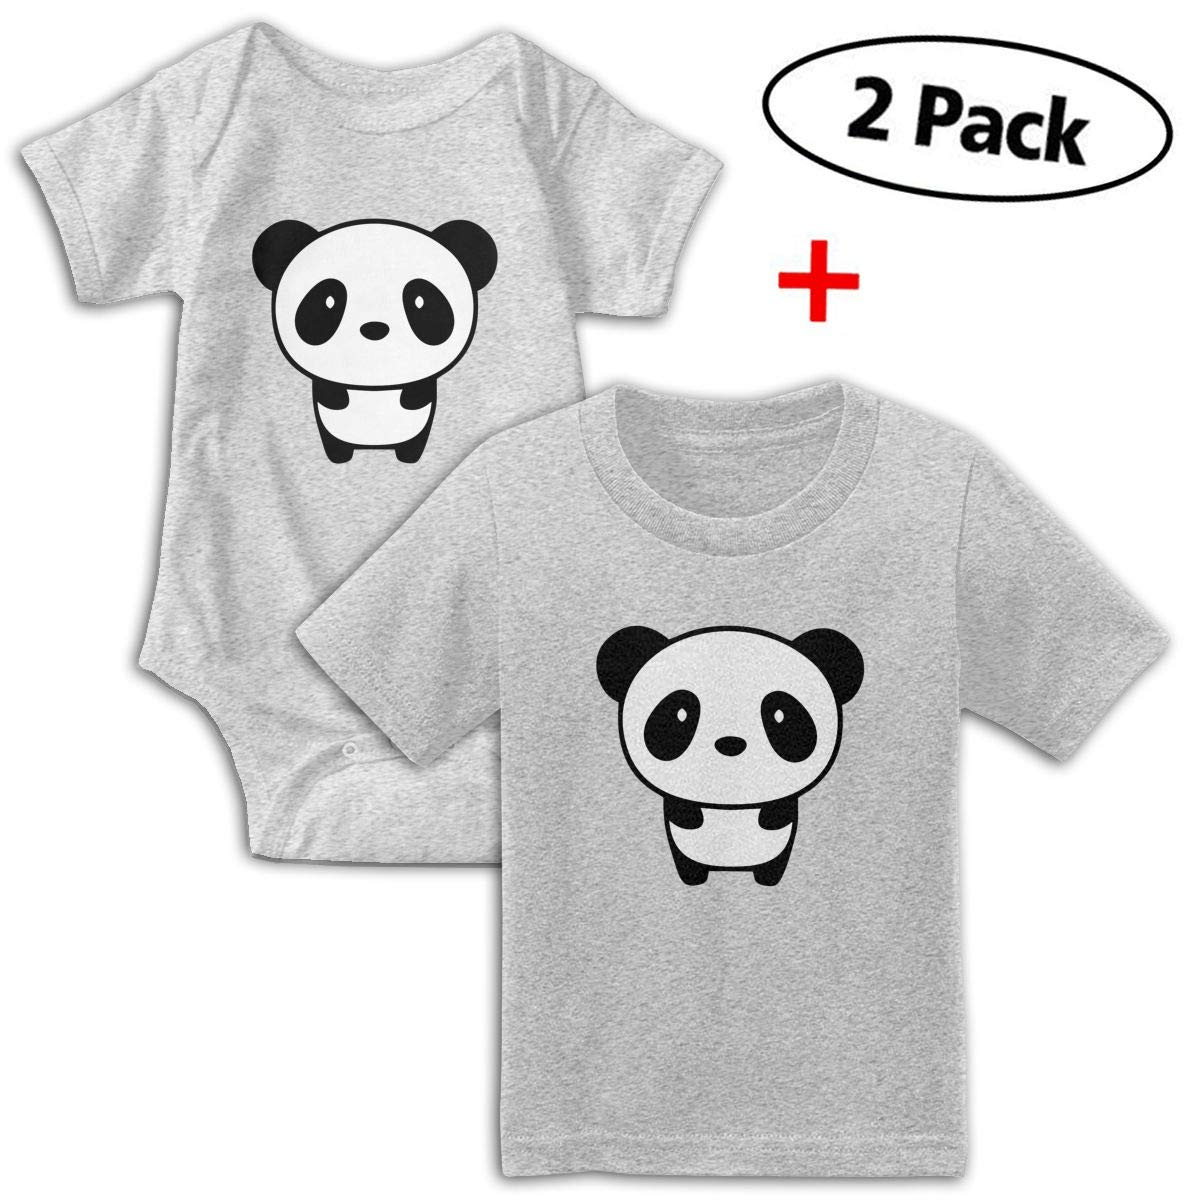 Panda Animal Babys Boys /& Girls Short Sleeve Jumpsuit Outfits and Tshirt